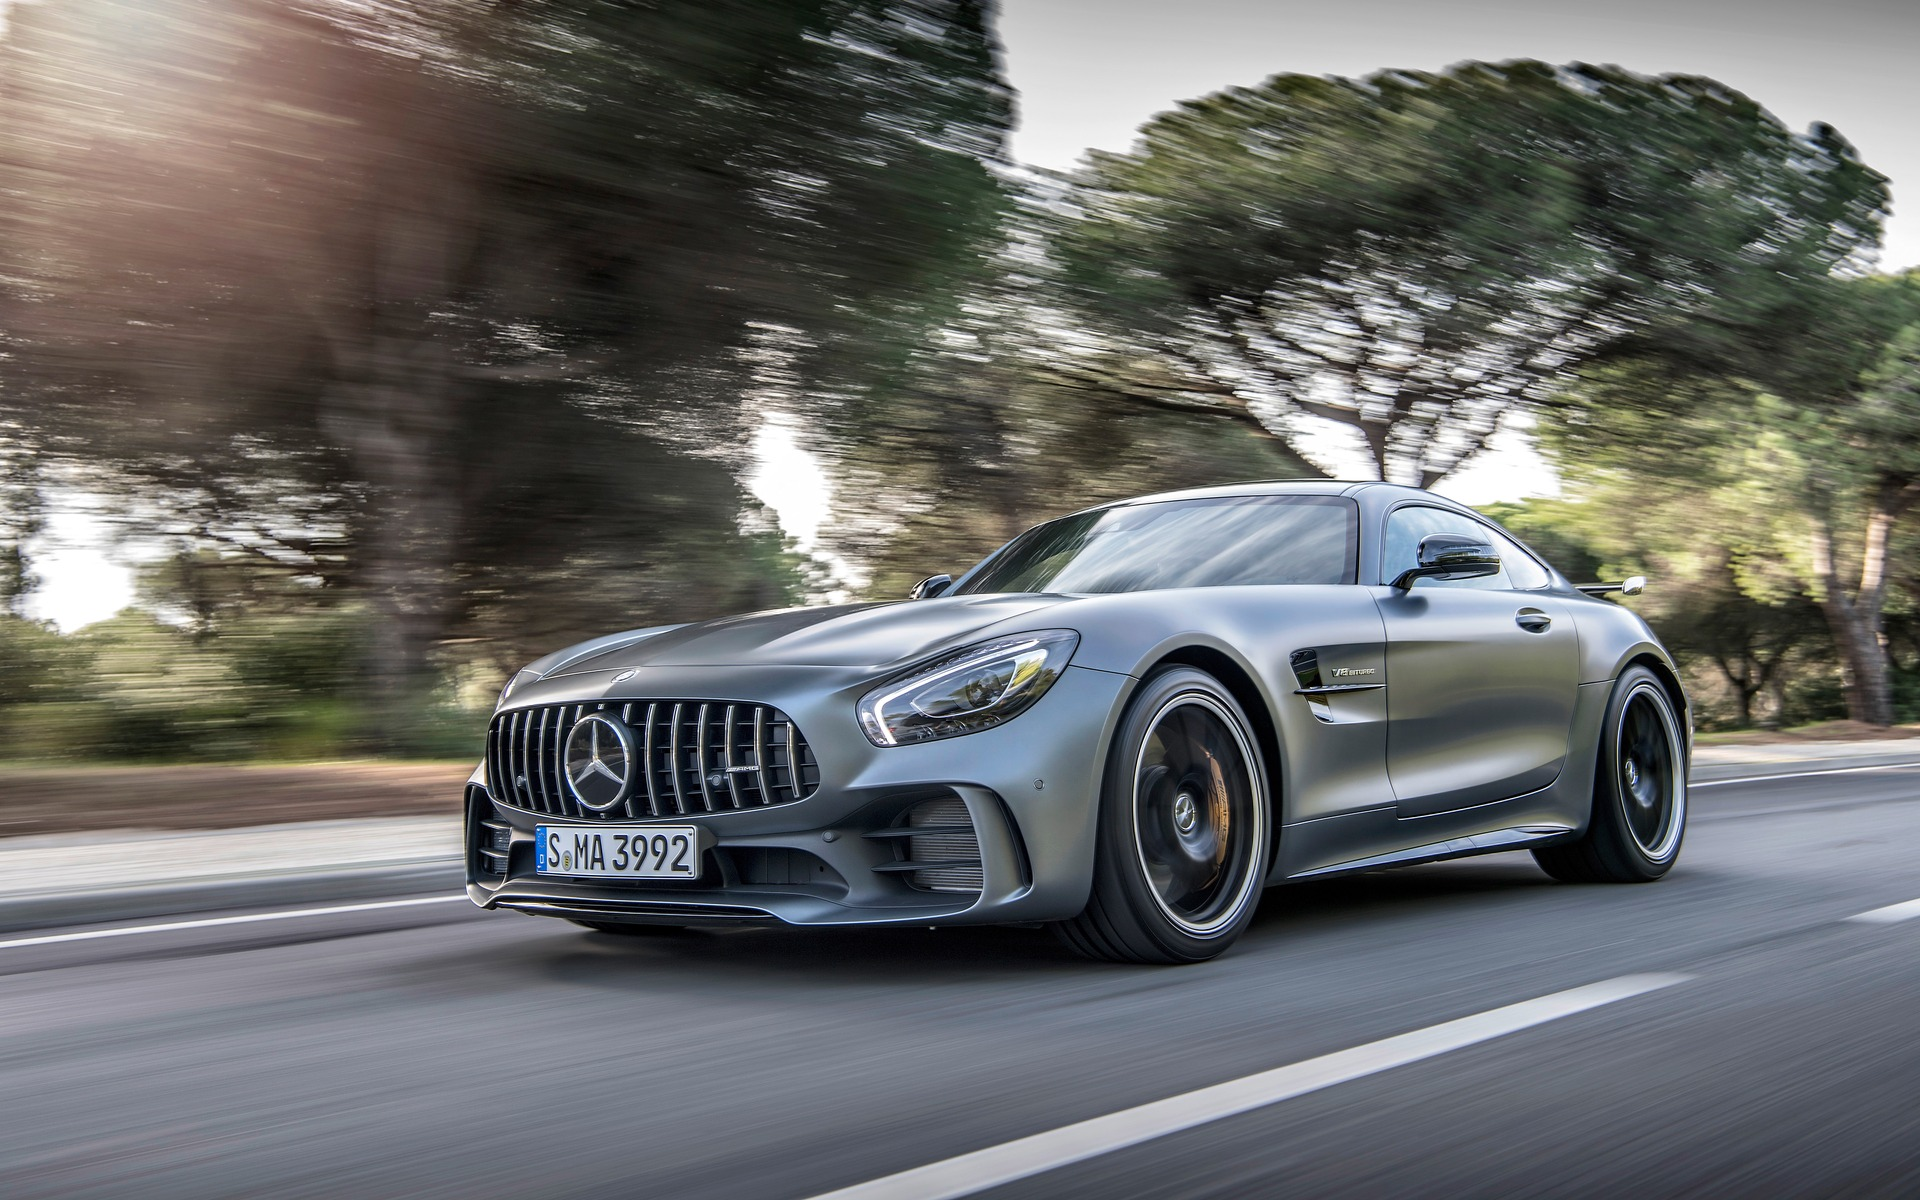 2018 Mercedes Benz AMG GT Coupe   Price  engine  full technical     2018 Mercedes Benz AMG GT Coupe   Price  engine  full technical  specifications   The Car Guide   Motoring TV